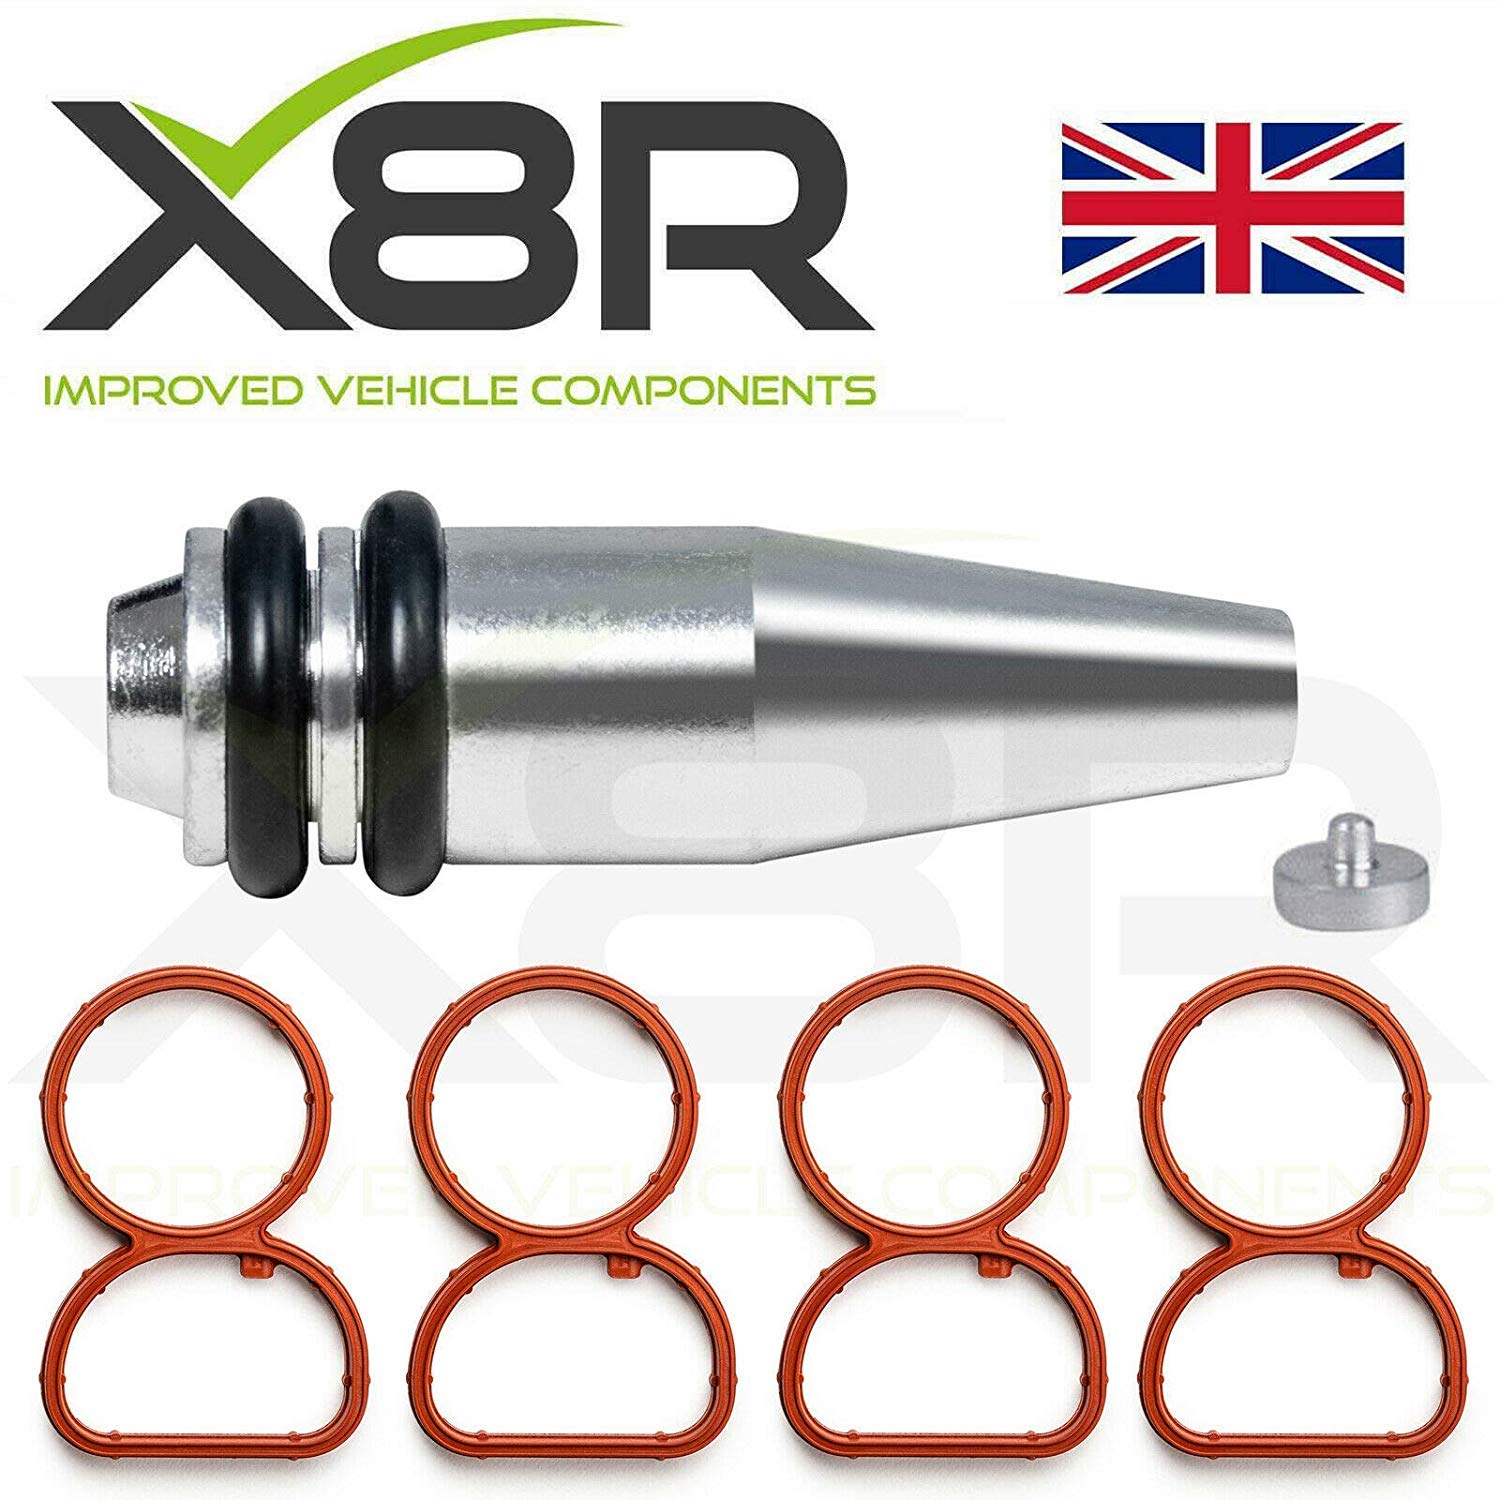 6x 22 mm Swirl Flap Replacement Blanks Delete Plug Removal Fix for BMW M47 M57